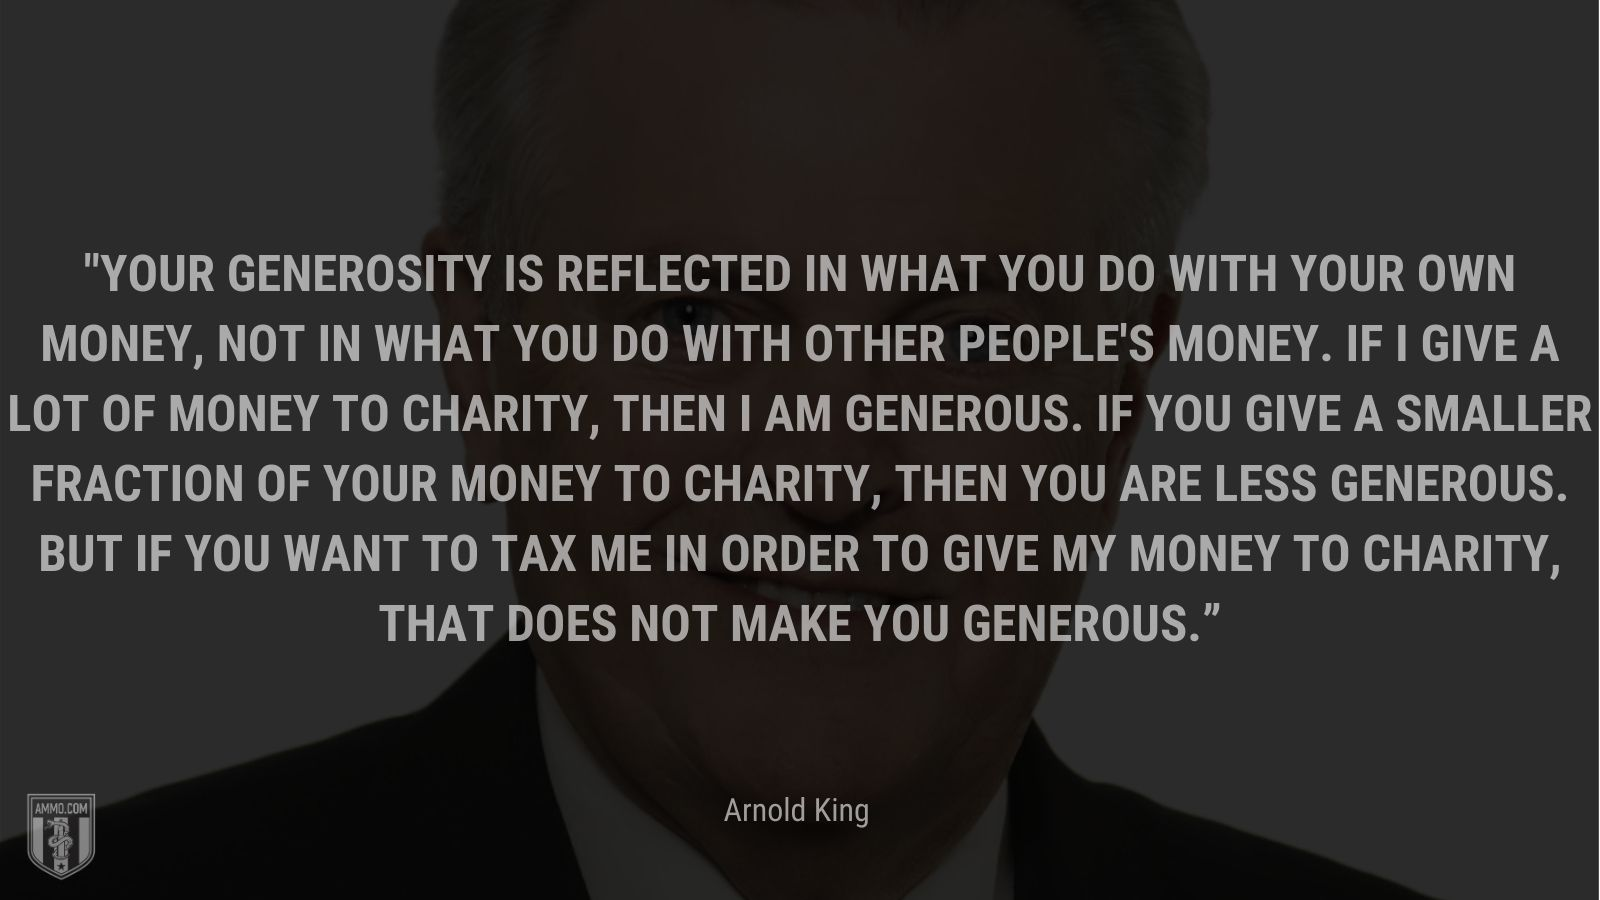 """""""Your generosity is reflected in what you do with your own money, not in what you do with other people's money. If I give a lot of money to charity, then I am generous. If you give a smaller fraction of your money to charity, then you are less generous. But if you want to tax me in order to give my money to charity, that does not make you generous."""" - Arnold King"""